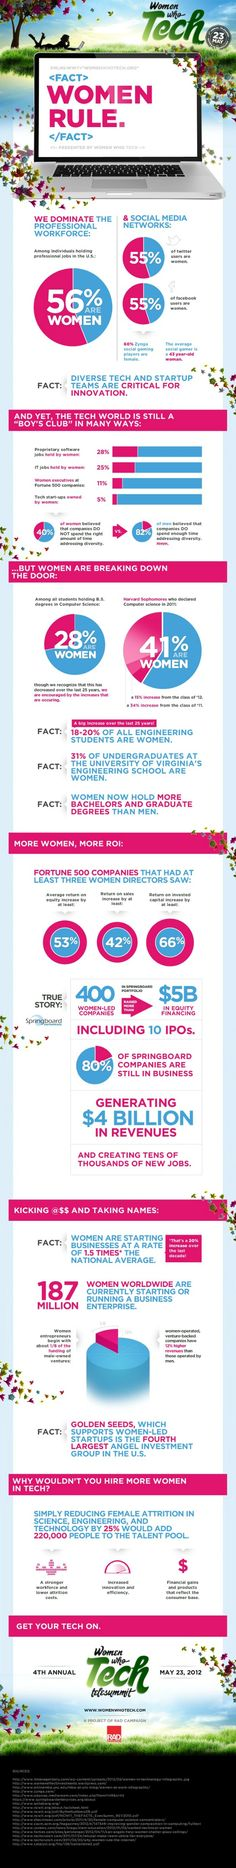 Can Tech Companies Continue To Innovate With No Women At The Table? Women Rule... #diversity #innovation